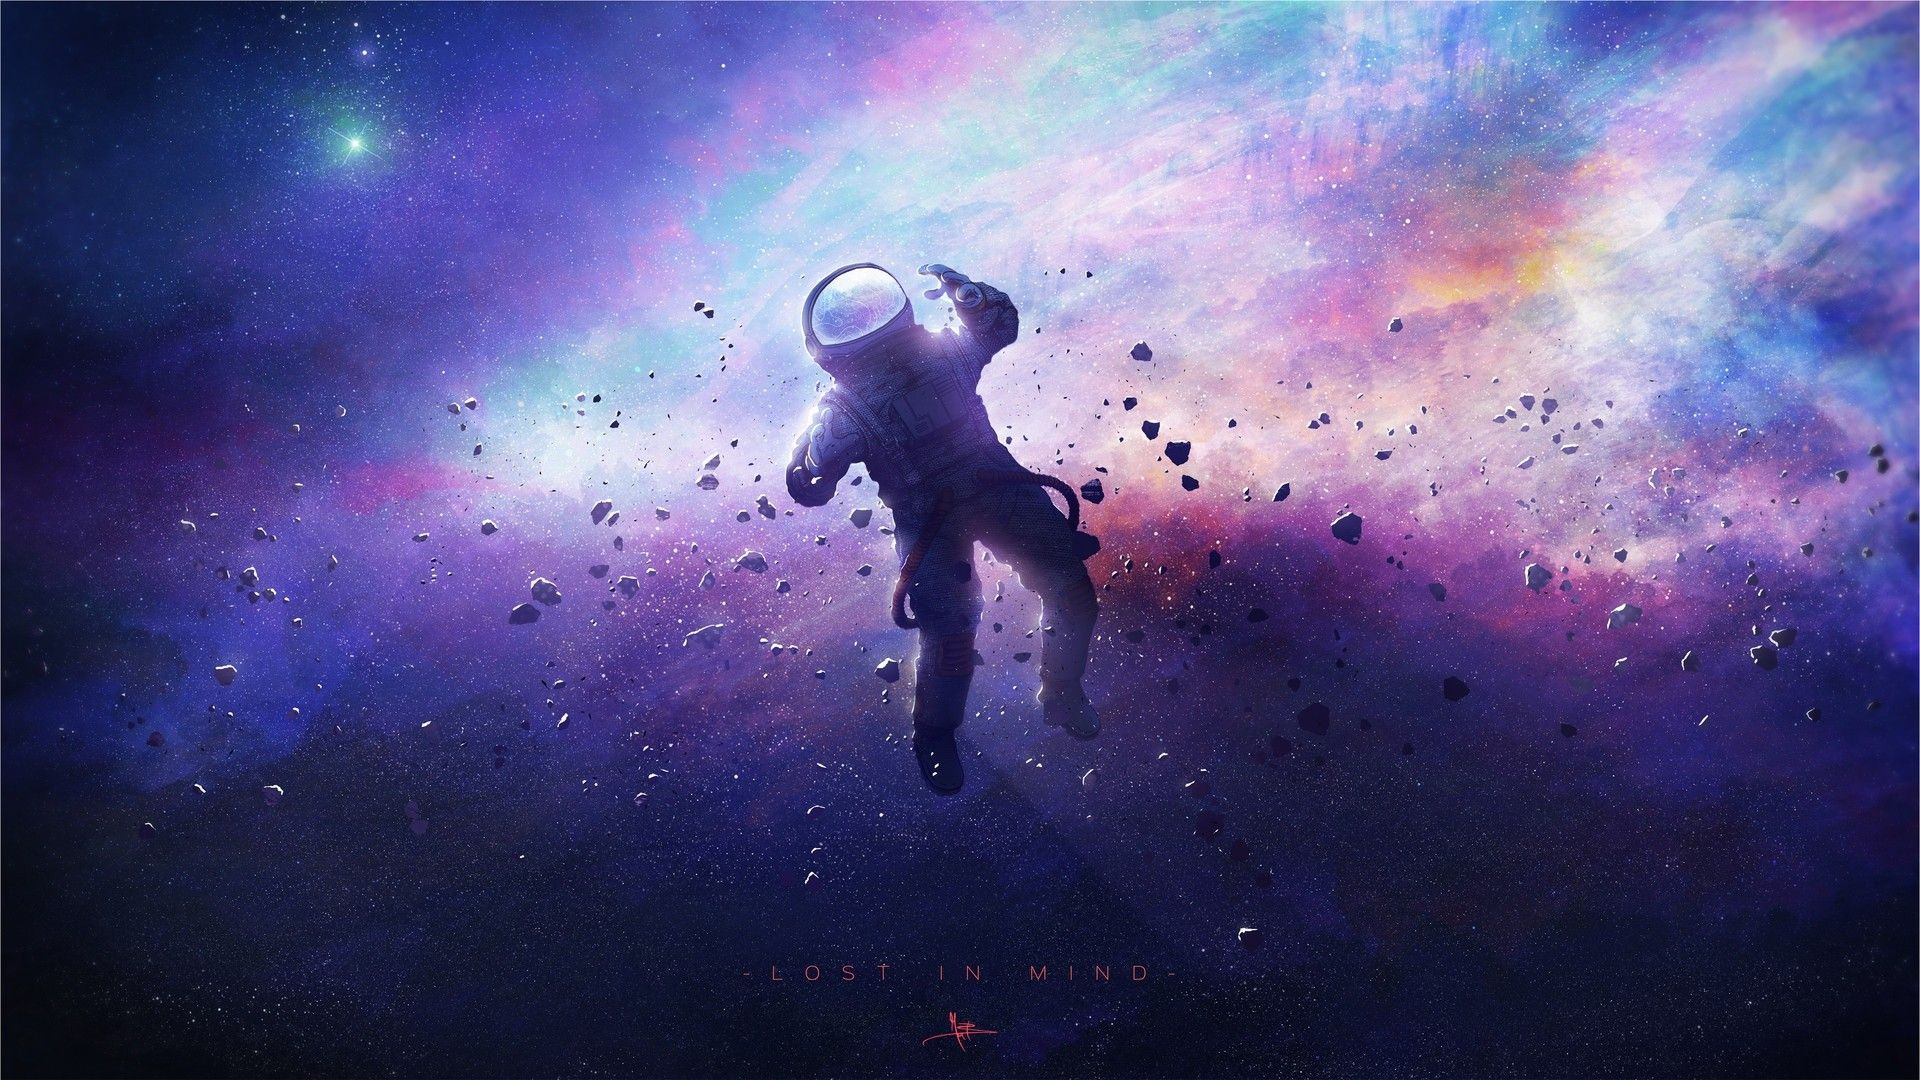 Lost In Space Astronaut Wallpaper Outer Space Wallpaper Wallpaper Space